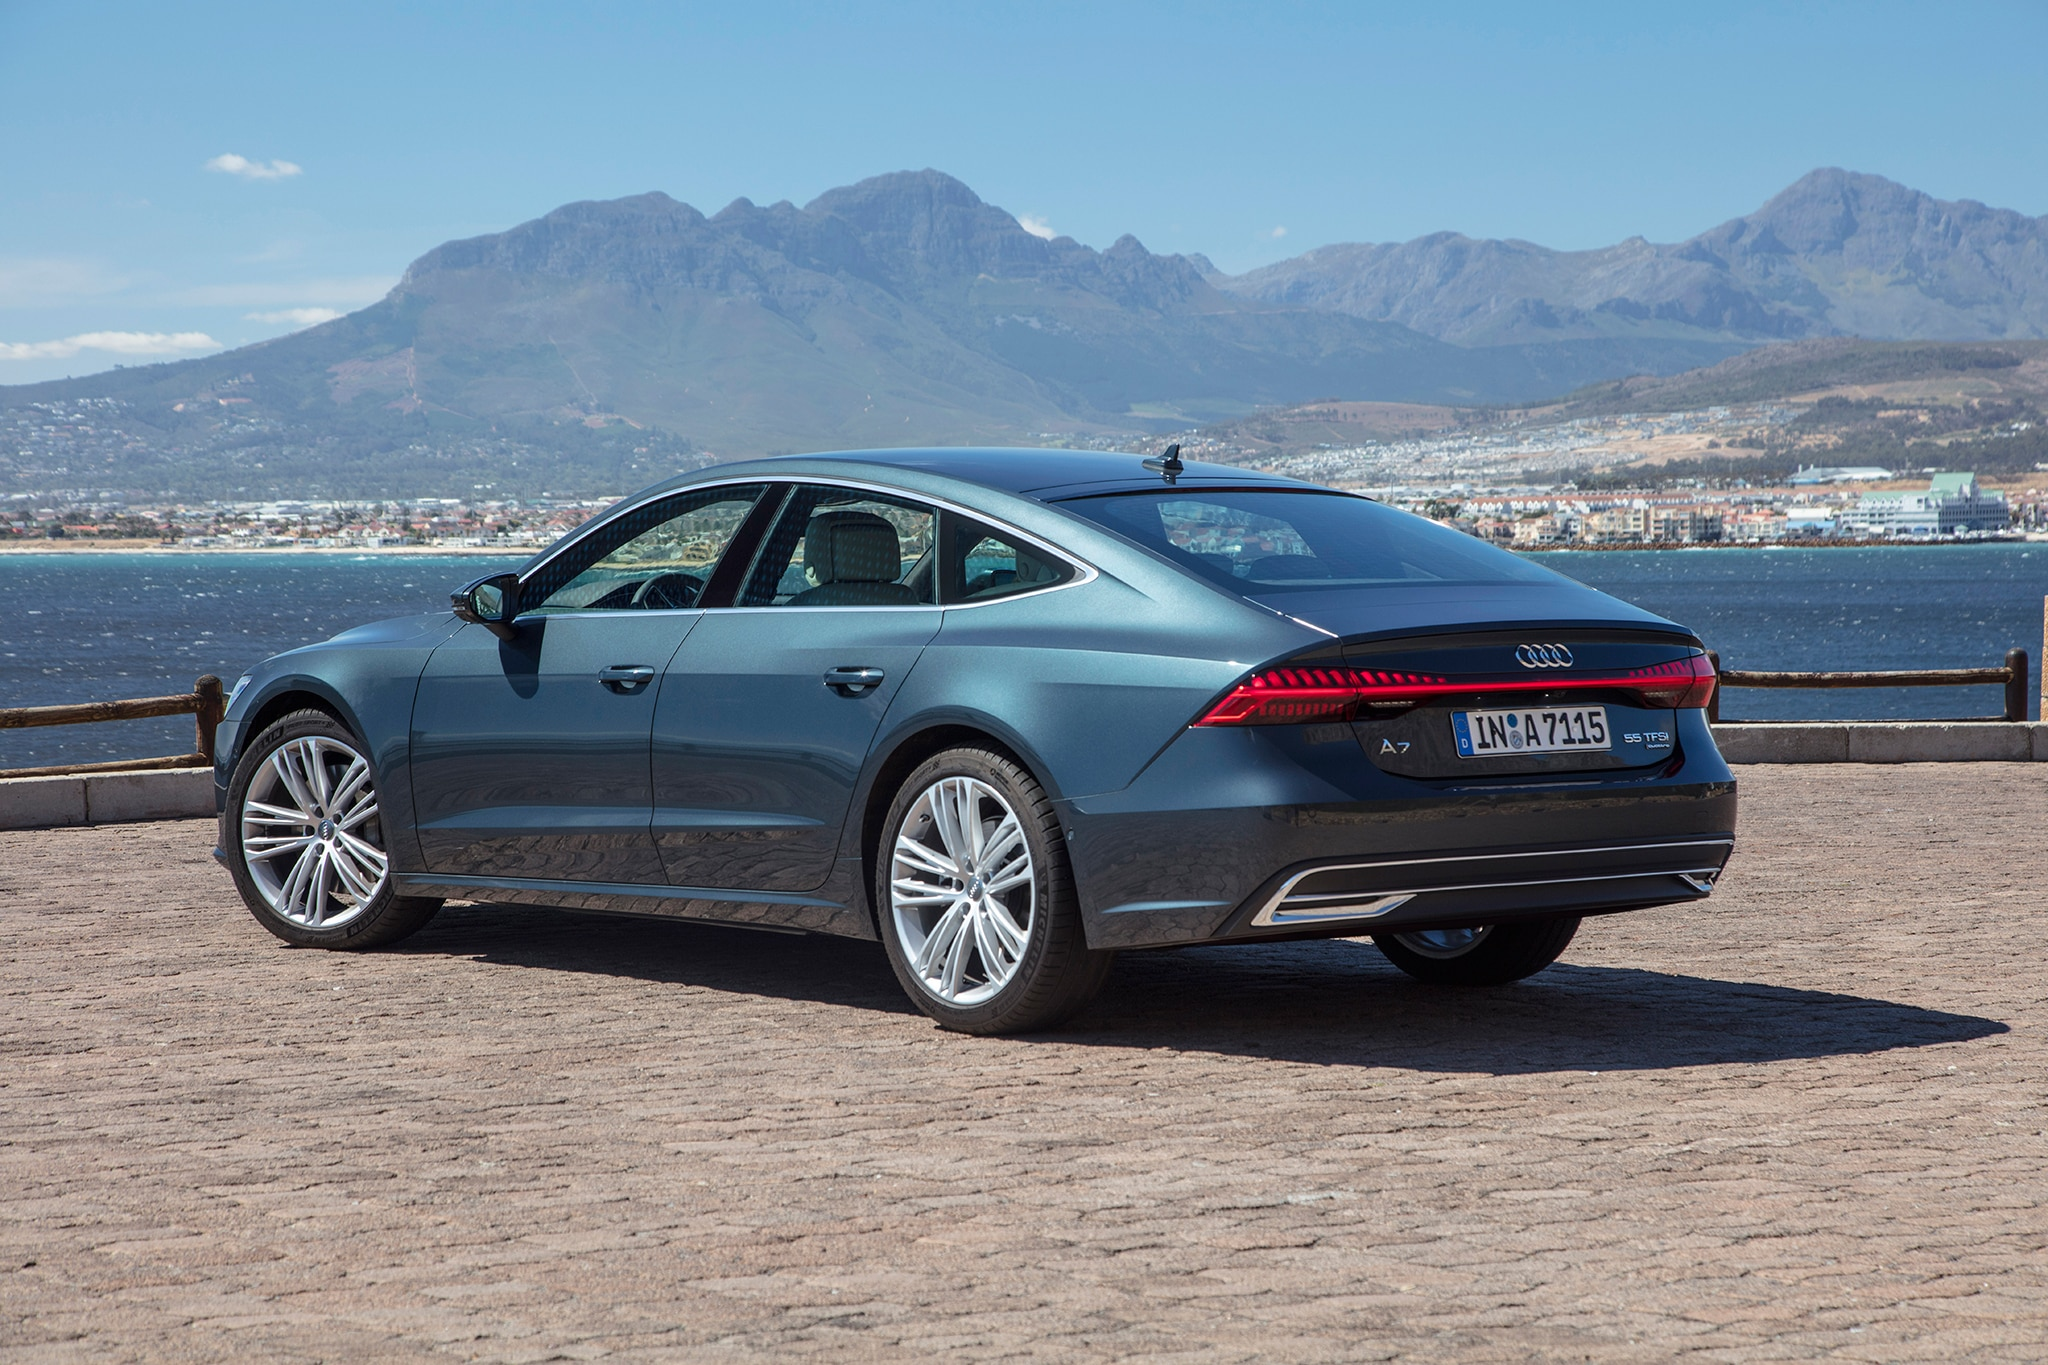 2018 Audi A7 >> 2019 Audi A7 Sportback First Drive Review | Automobile Magazine